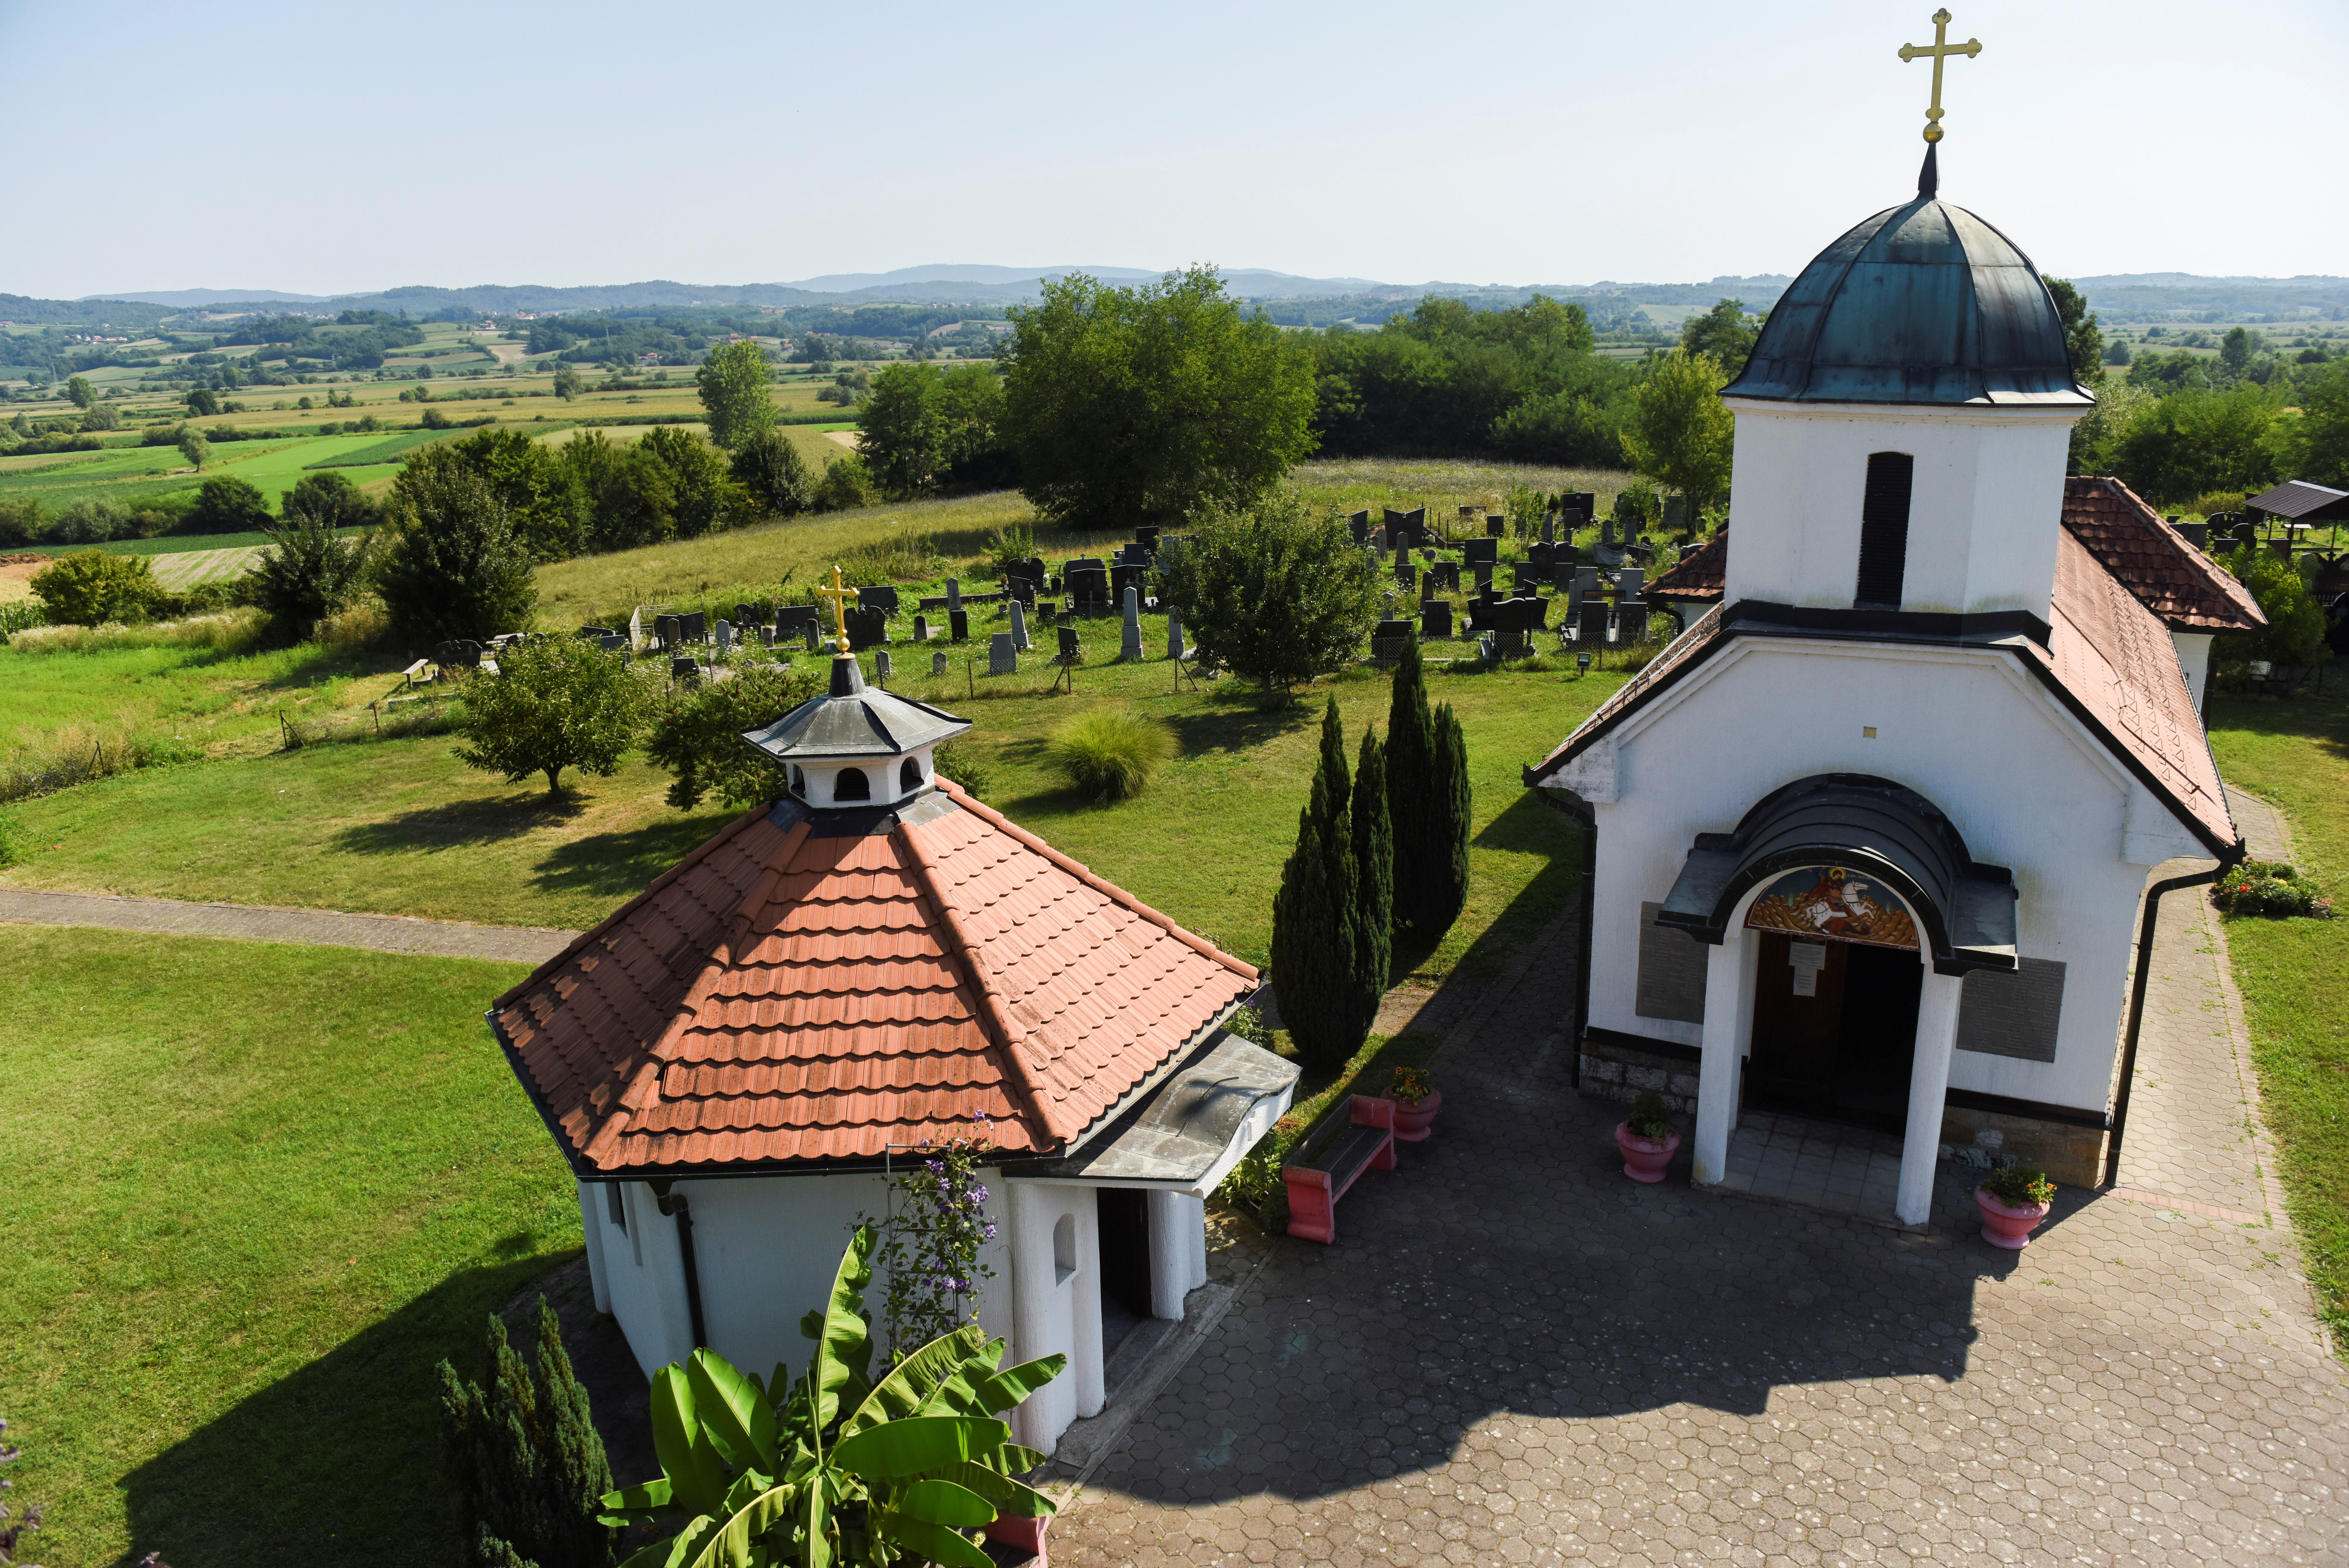 A general view of the church of St. George in Gornje Nedeljice village, where the company Rio Tinto plans to build an underground mine for the exploitation of jadarite, in Serbia, August 9, 2021. Picture taken August 9, 2021. REUTERS/Zorana Jevtic